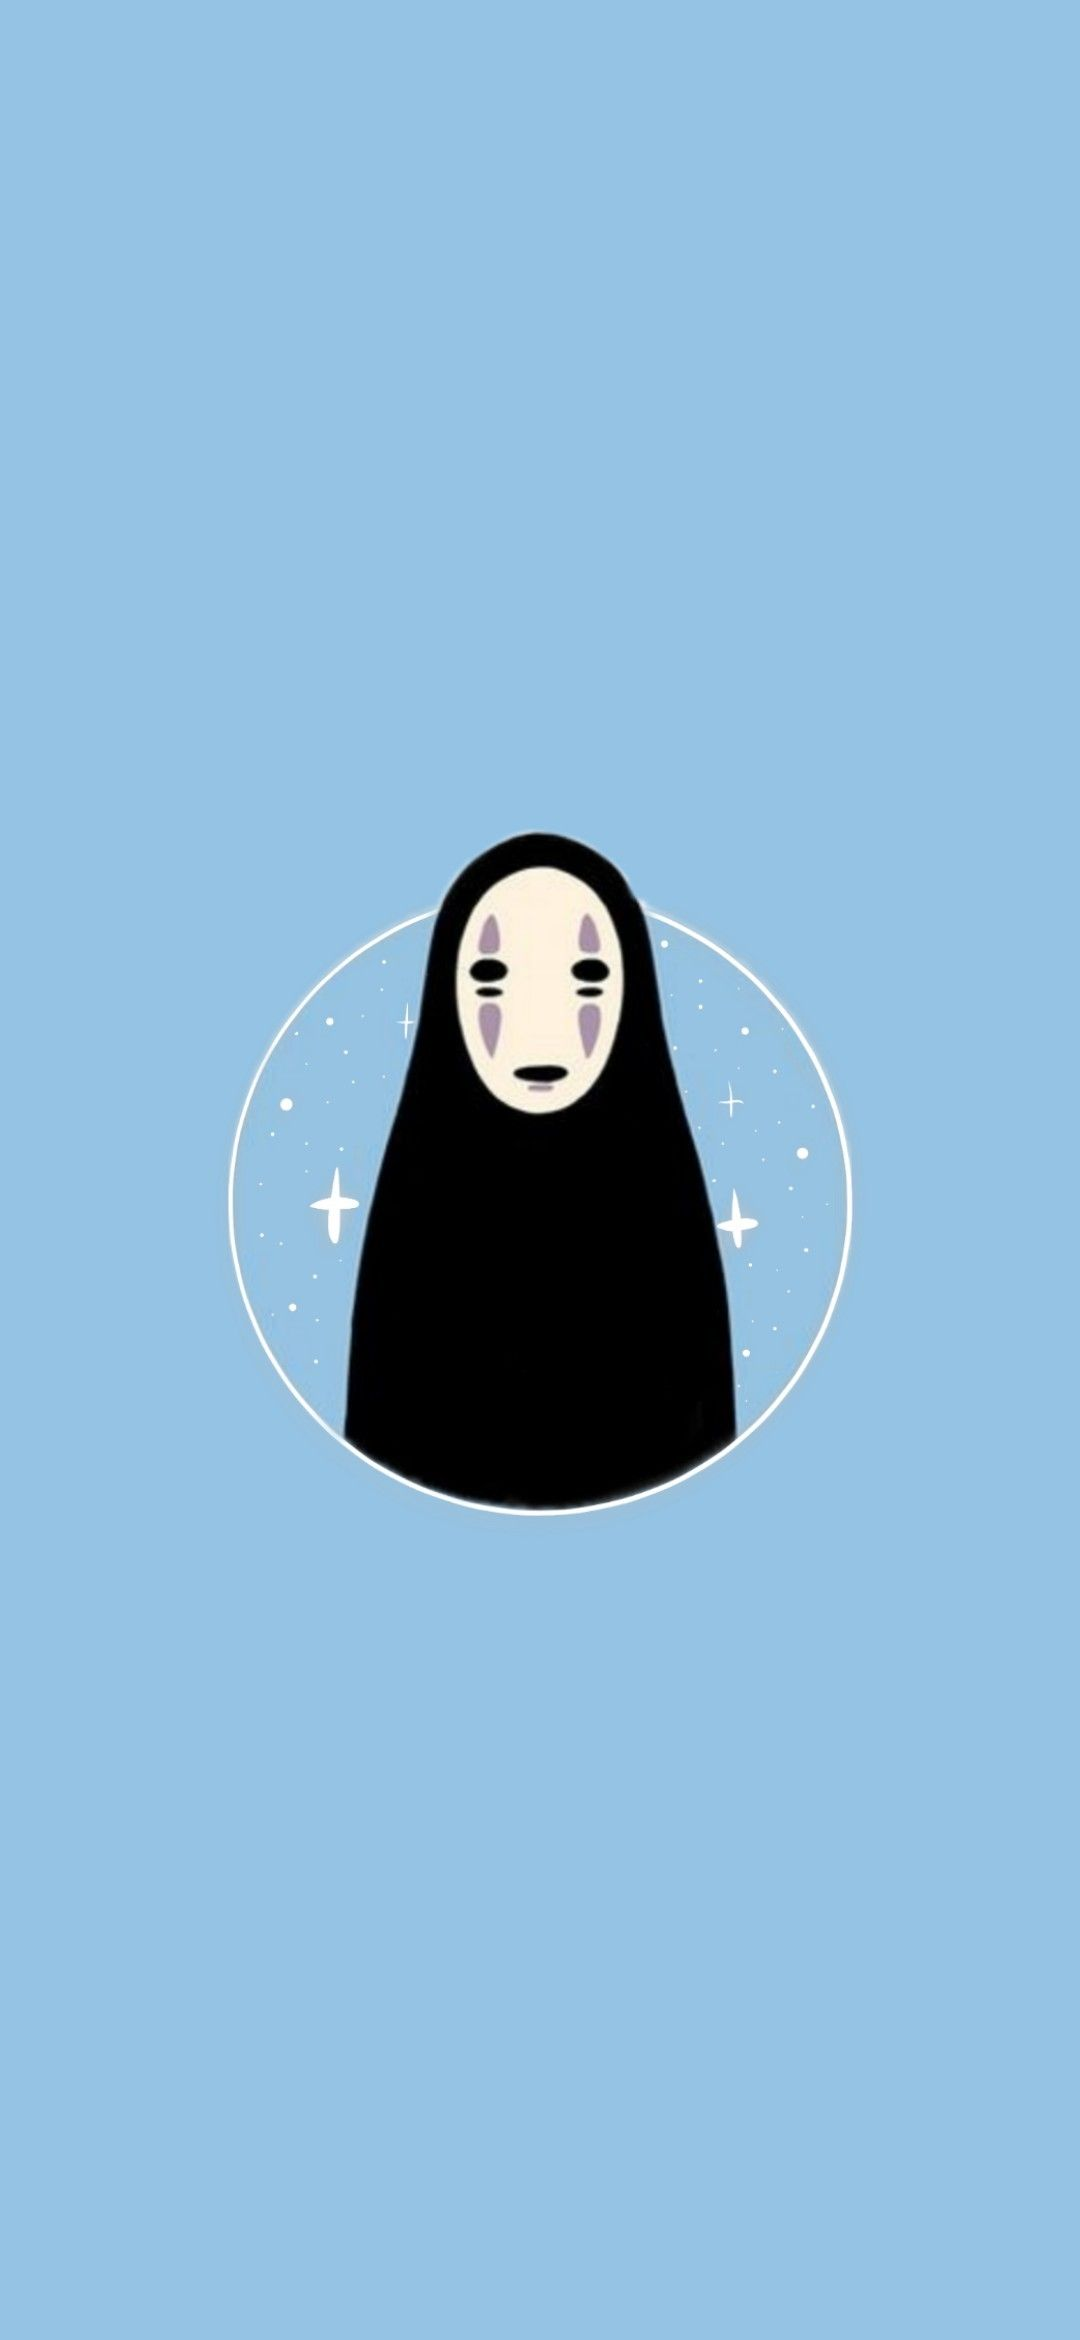 Sprited Away No Face Aesthetic Blue Iphone Wallpaper Anime Backgrounds Wallpapers Blue Digital Art Studio Ghibli Art